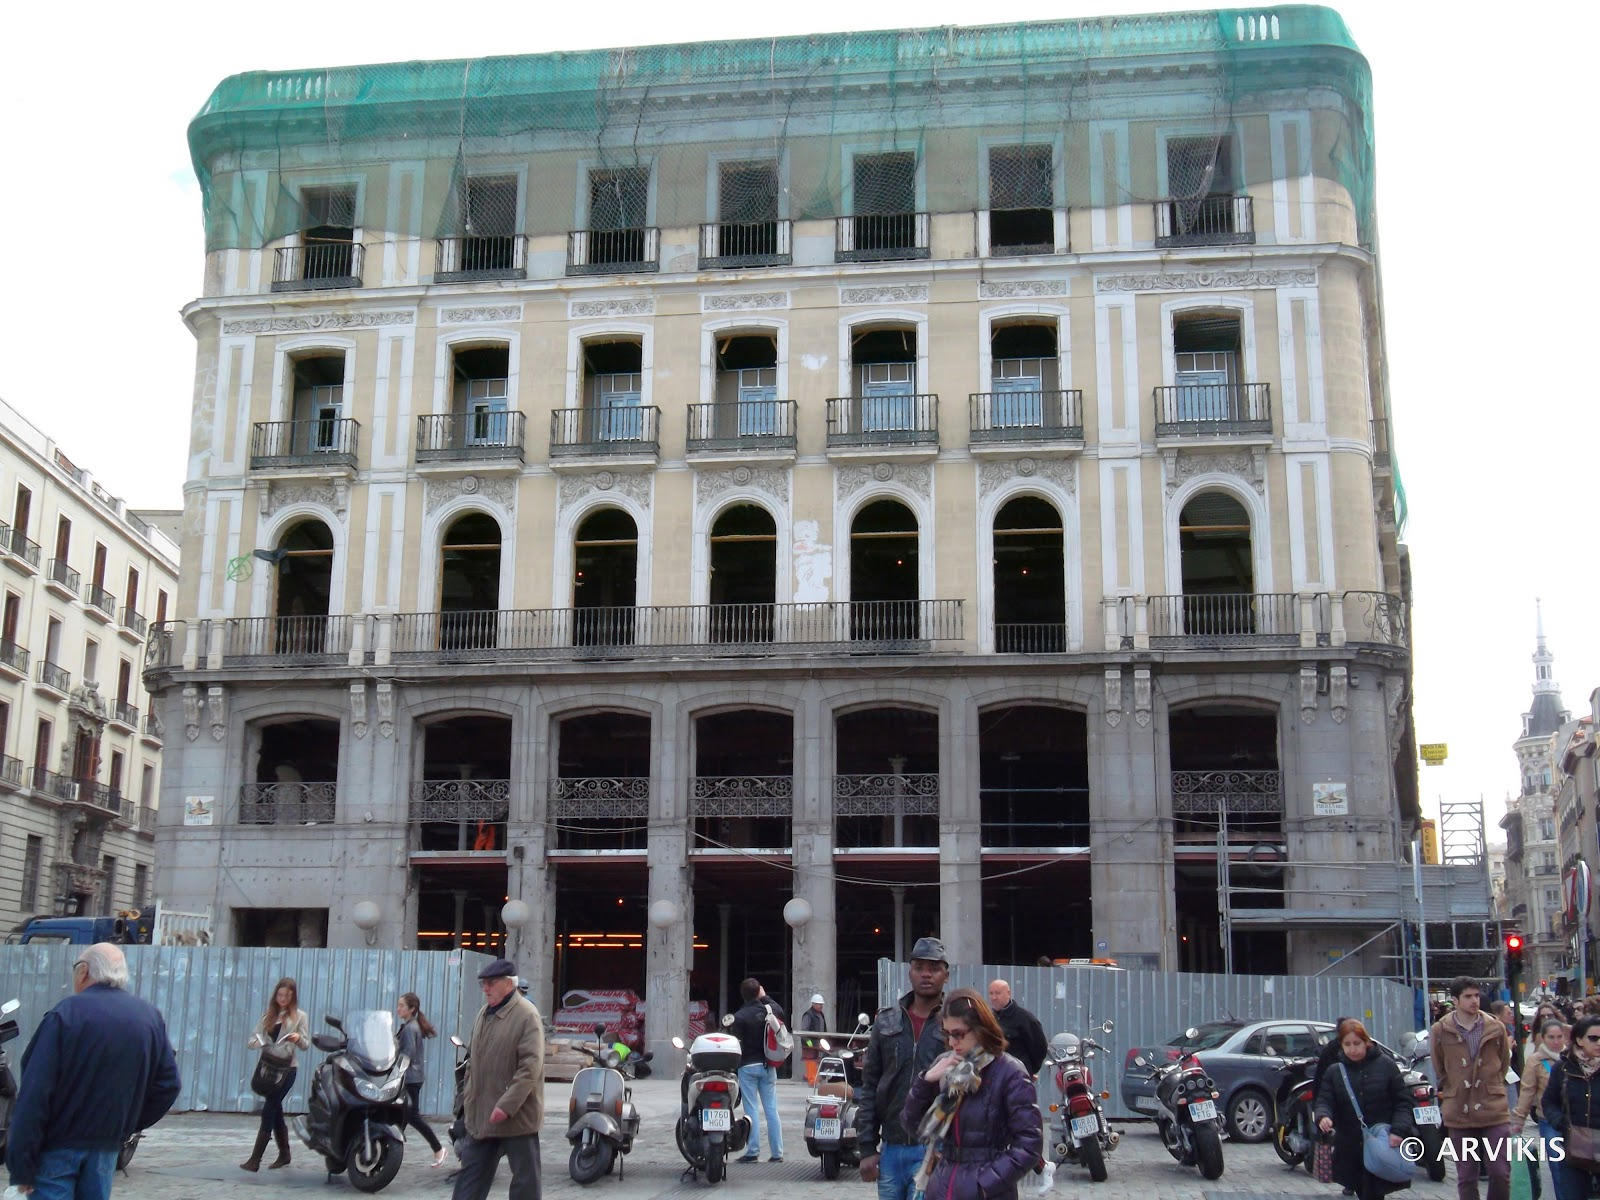 Arvikis madrid el edificio tio pepe antiguo for Edificio puerta del sol